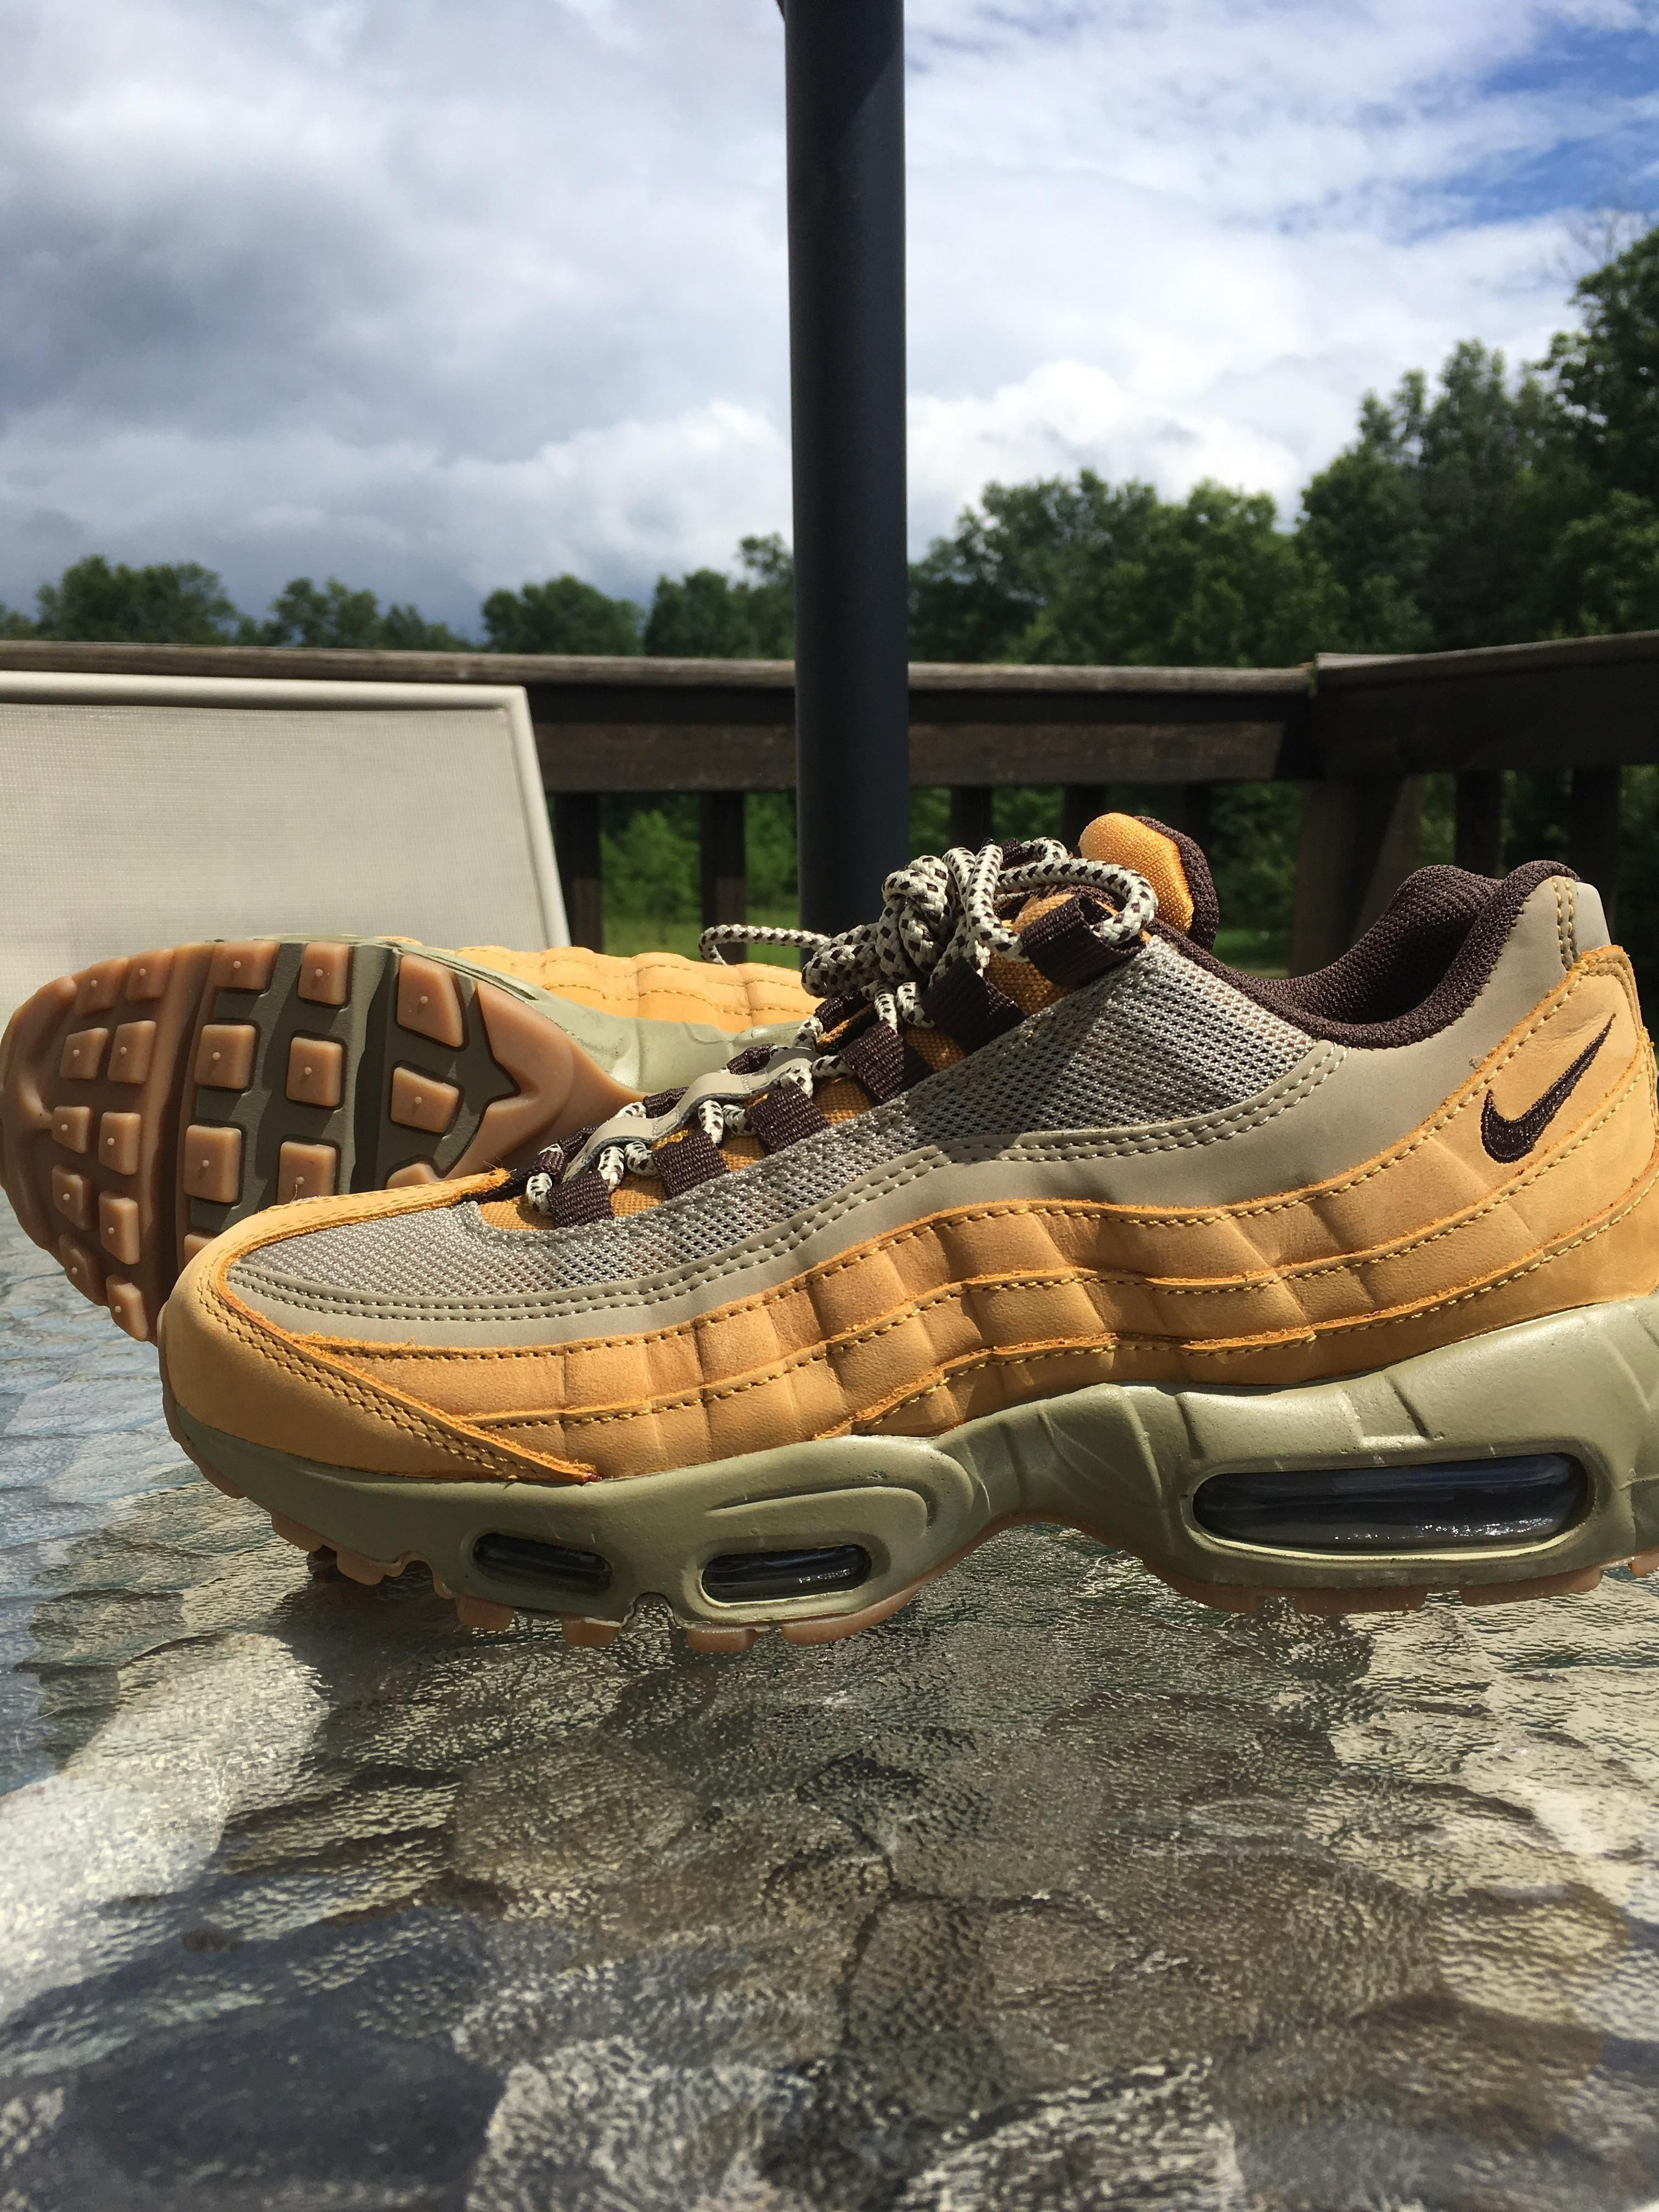 52552a591bf7 Nike Womens Air Max Thea Trainer  Just copped these Wheat Air Max 95s at  Marshalls ...